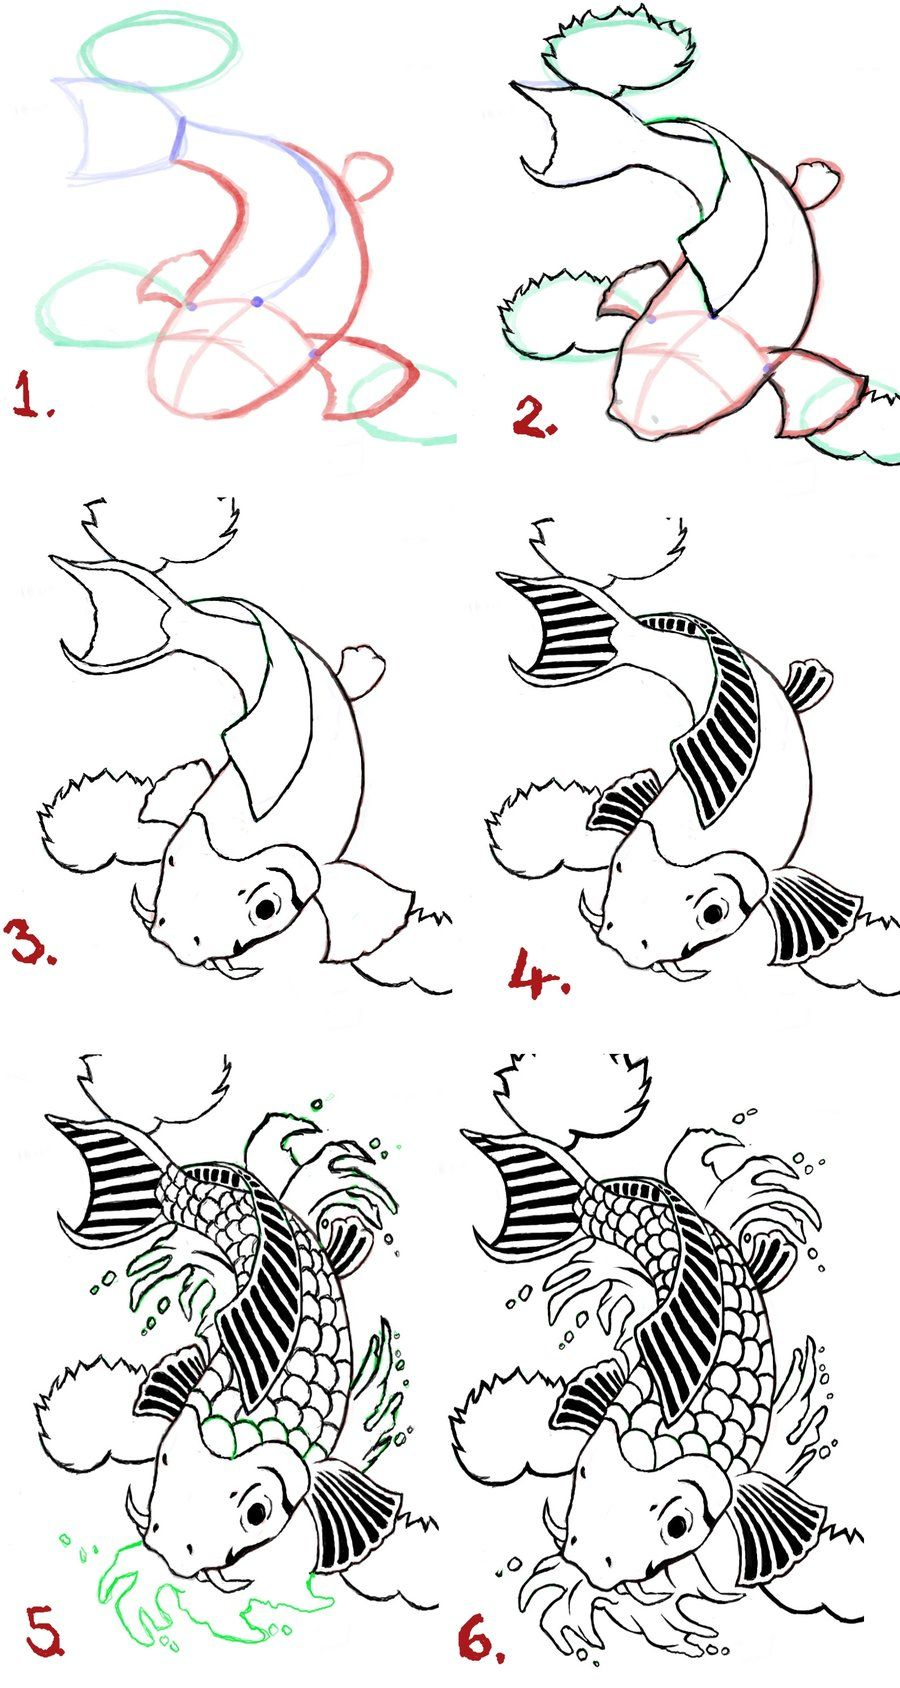 Uncategorized How To Draw A Koi Fish koi fish tattoo drawings drawing steps by wenwecollide how to draw on deviantart